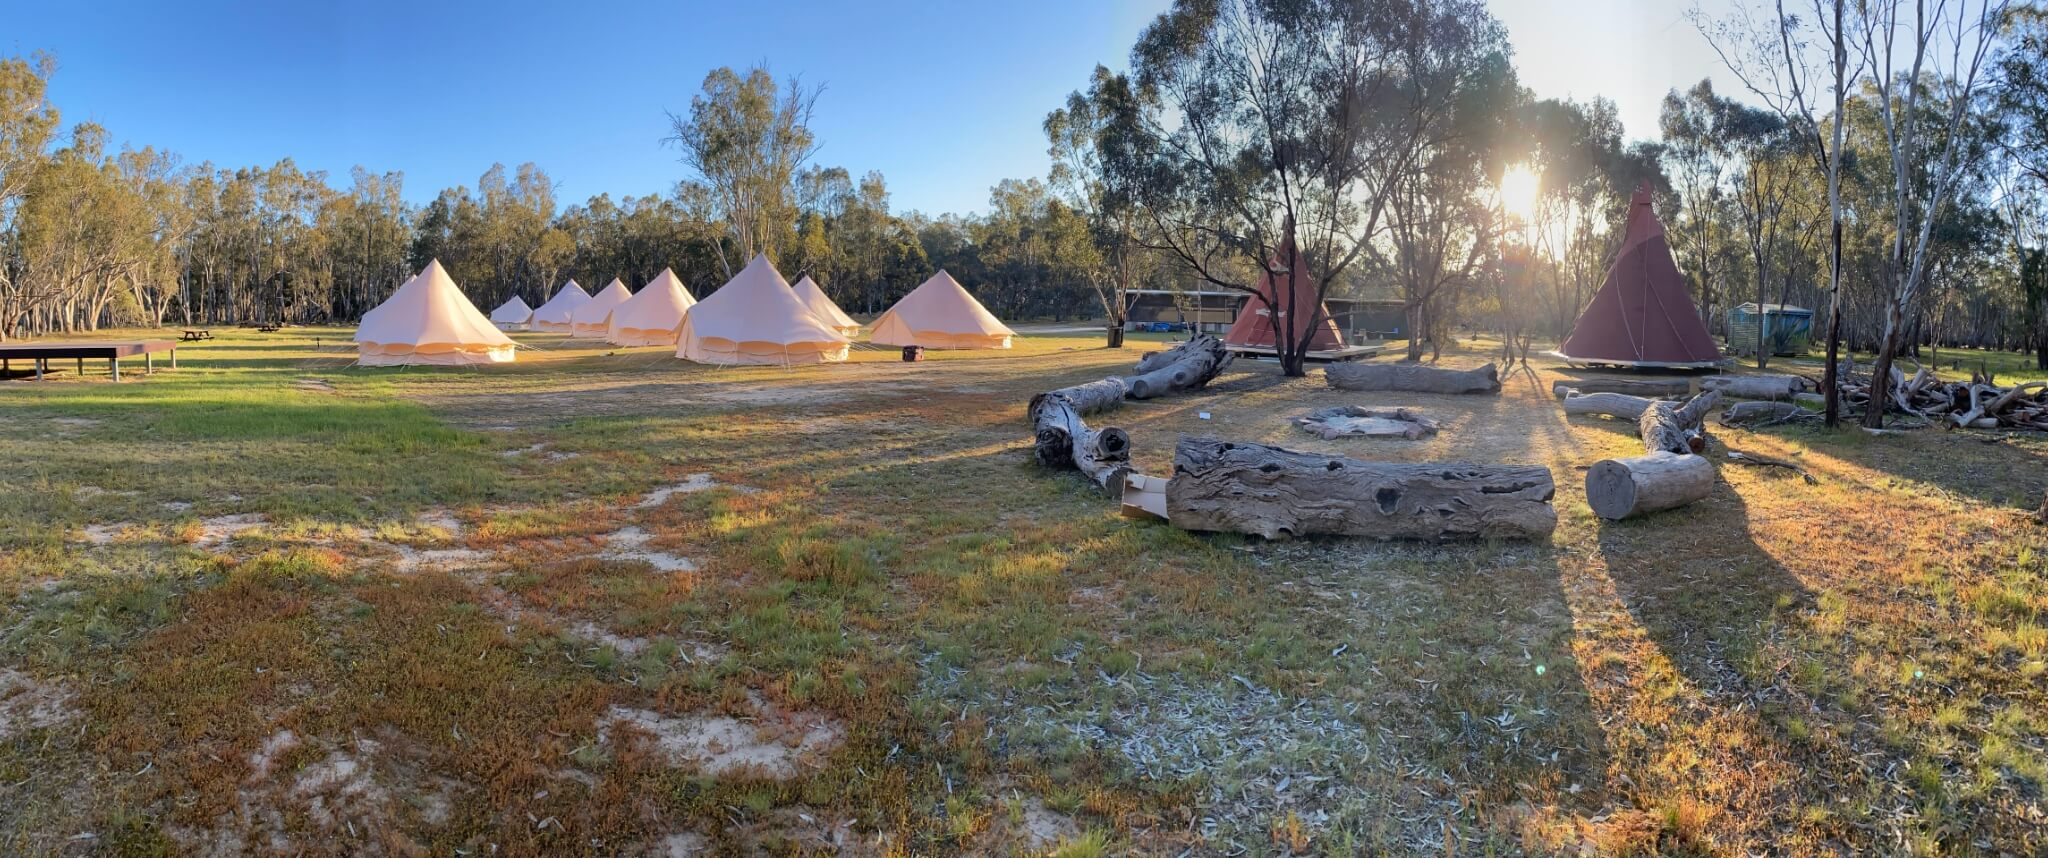 Camping grounds at Murray Life Adventures, Echuca, Victoria